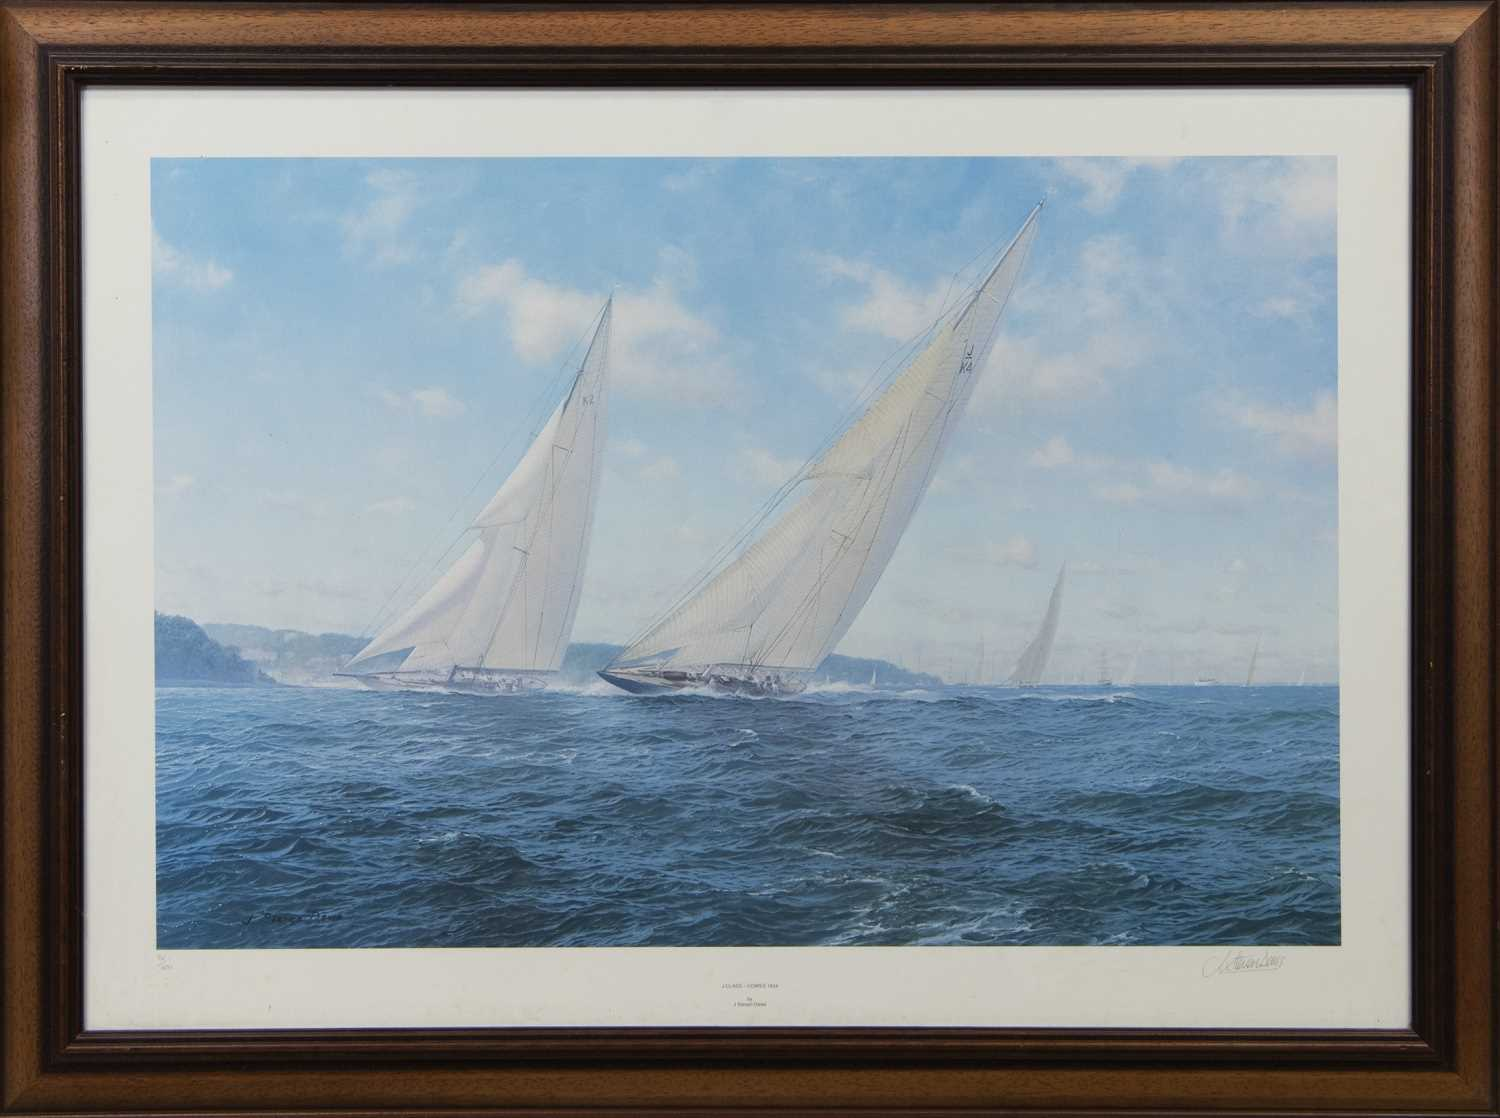 Lot 567 - J CLASS - COWES 1934, A SIGNED LIMITED EDITION PRINT BY J. STEVEN DEWS